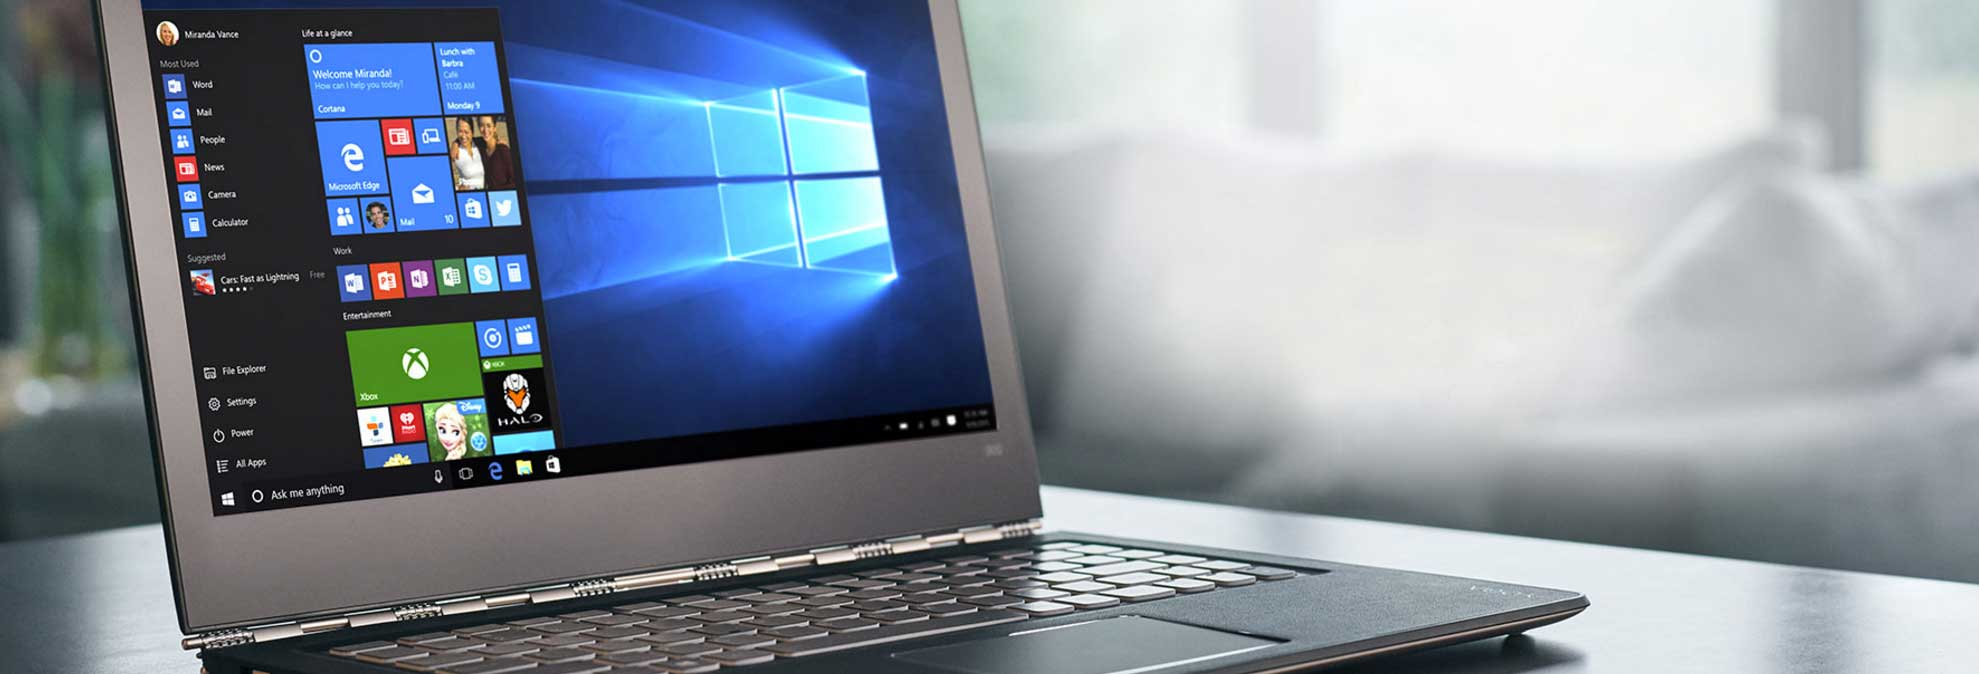 Last Chance To Decide On Windows 10